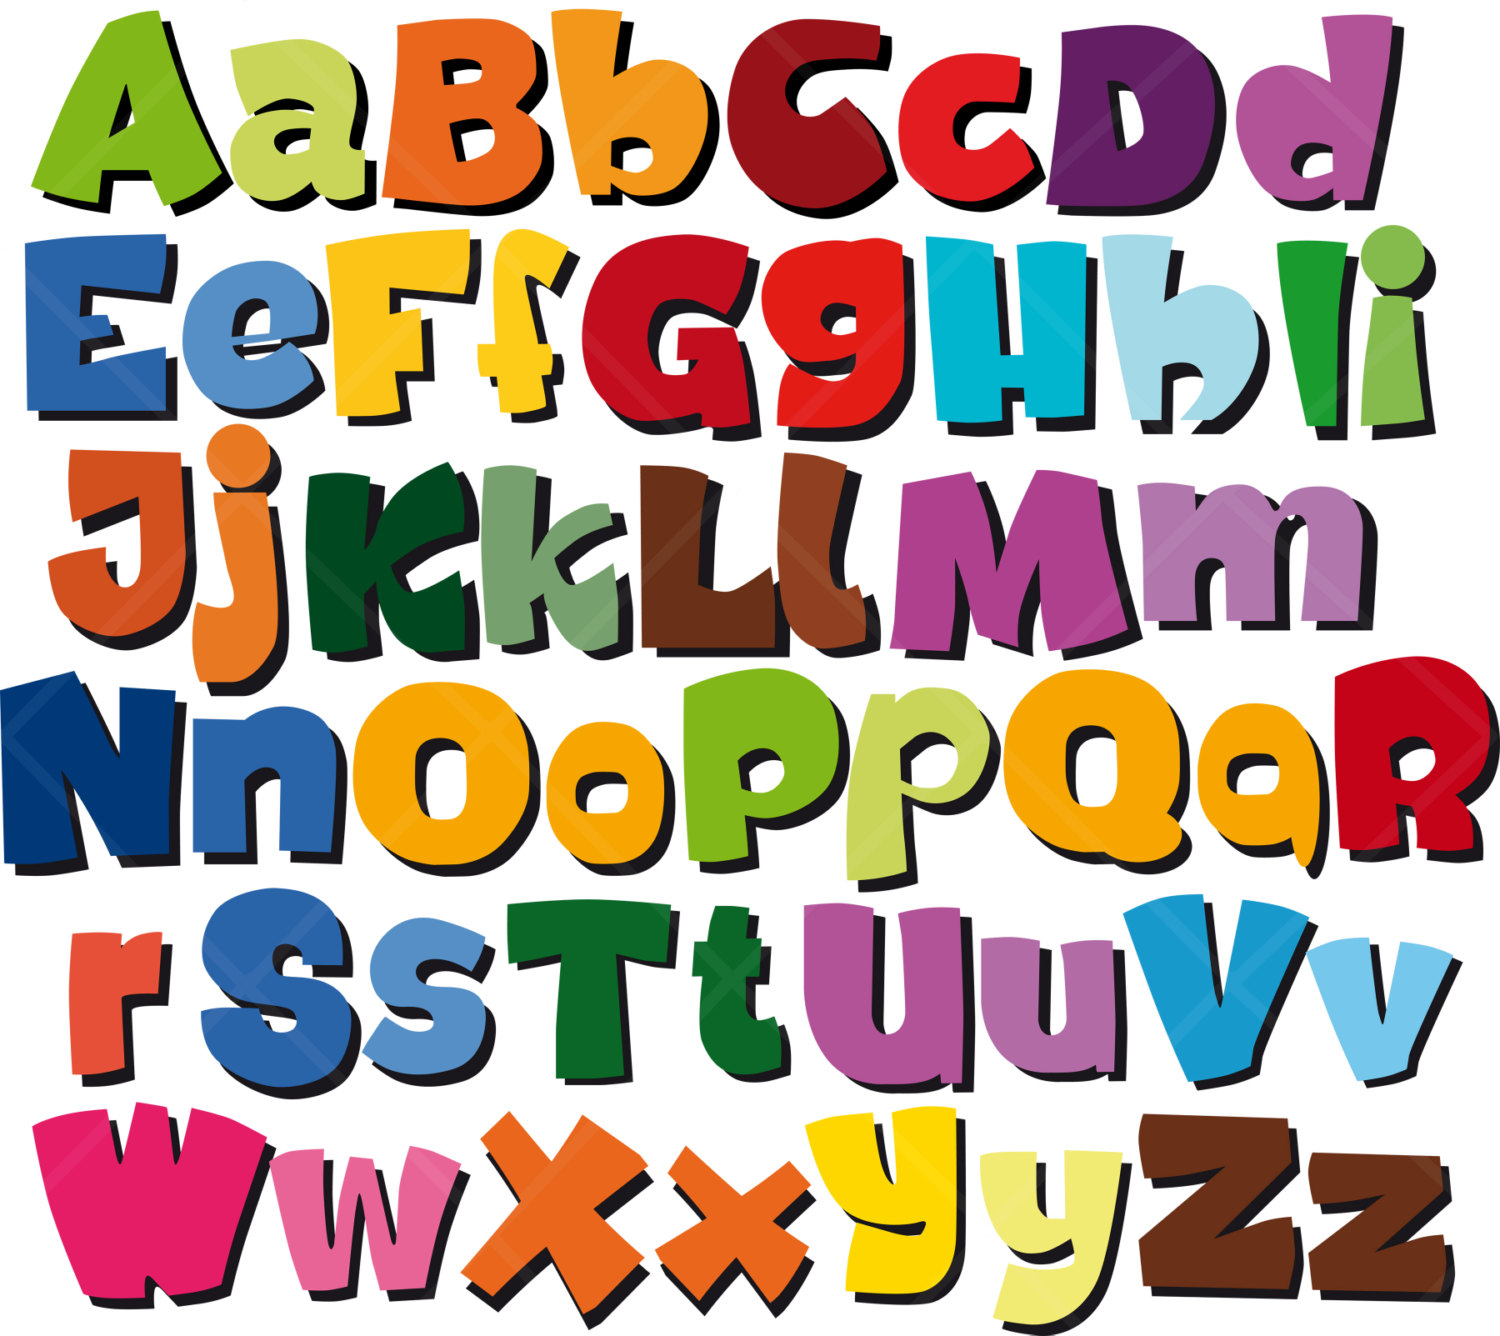 Alphabet clipart for kids free clipart i-Alphabet clipart for kids free clipart image 3 image-7